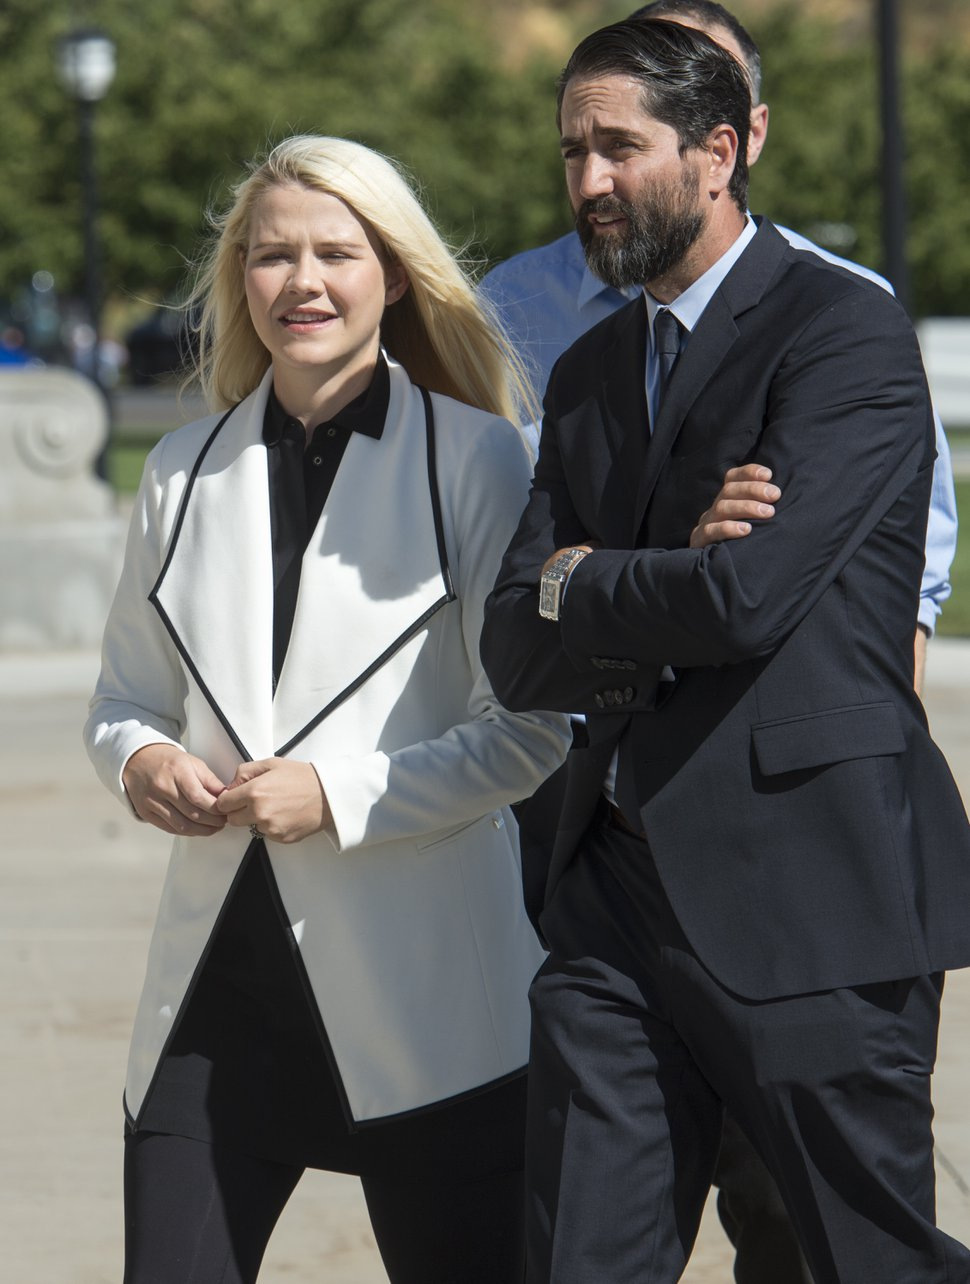 (Rick Egan | The Salt Lake Tribune) Elizabeth Smart talks to Brett Tolman, as she prepares to speak about the pending release of Wanda Barzee, during a news conference on the steps of the Utah State Capitol. Thursday, Sept. 13, 2018.